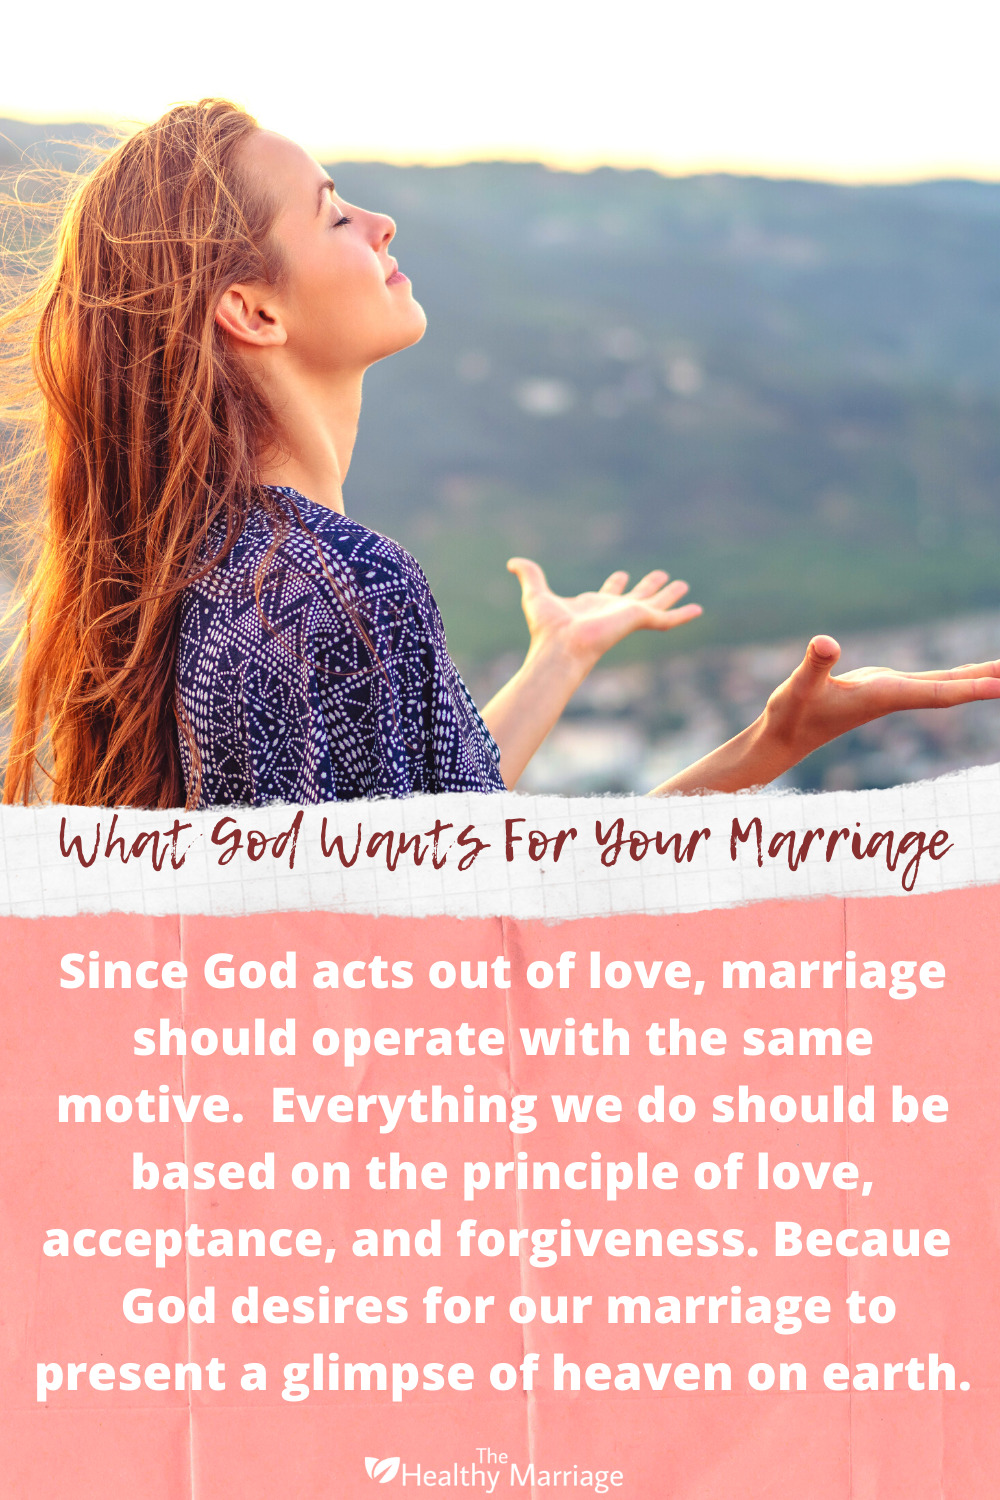 What does God want in a marriage?